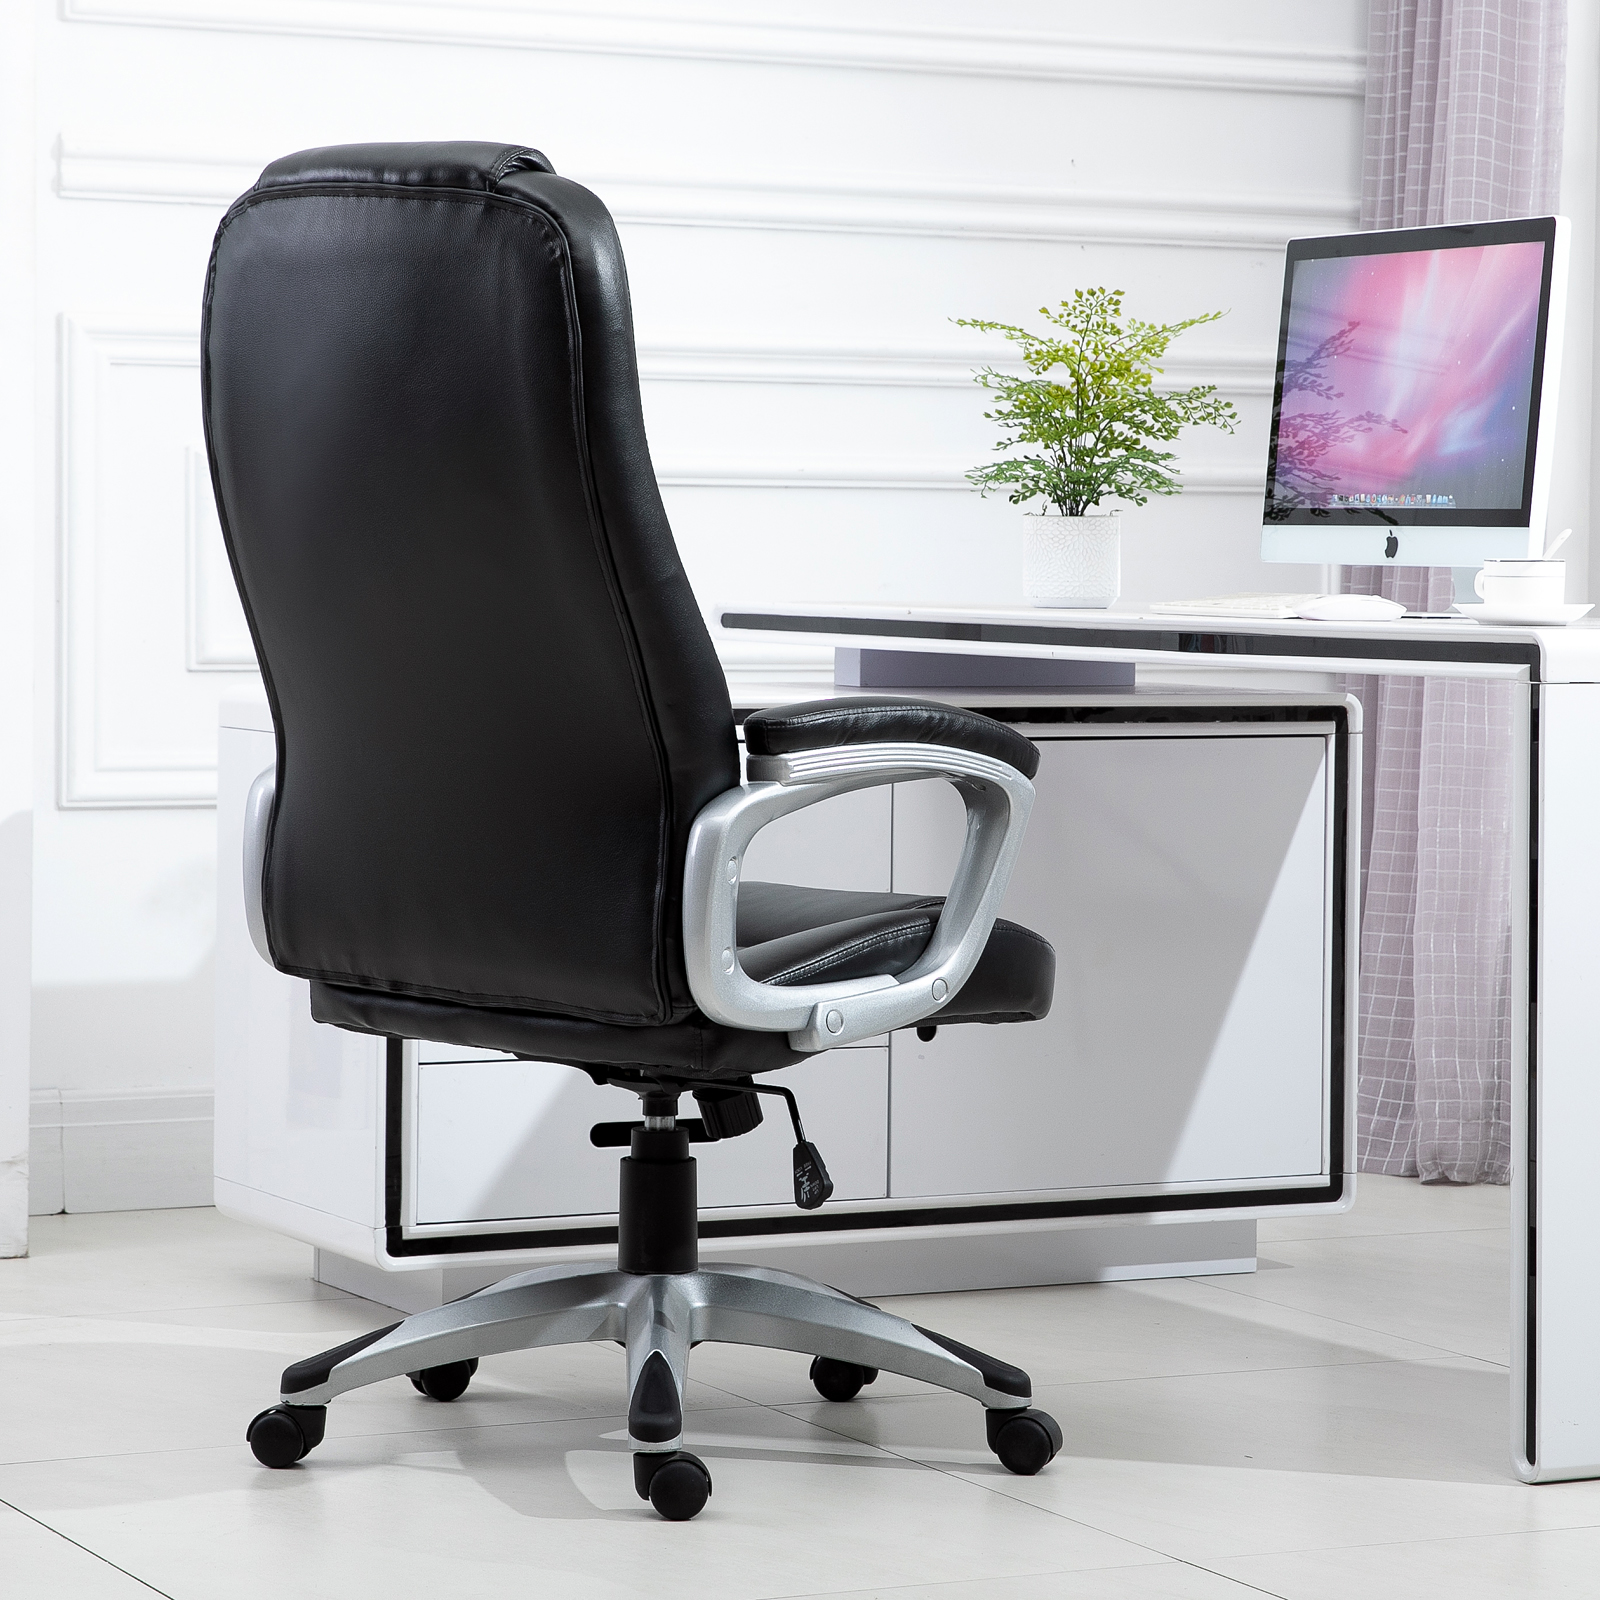 PU Leather Rocking Home Gaming Chair Adjustable Padded Seat with Wheels